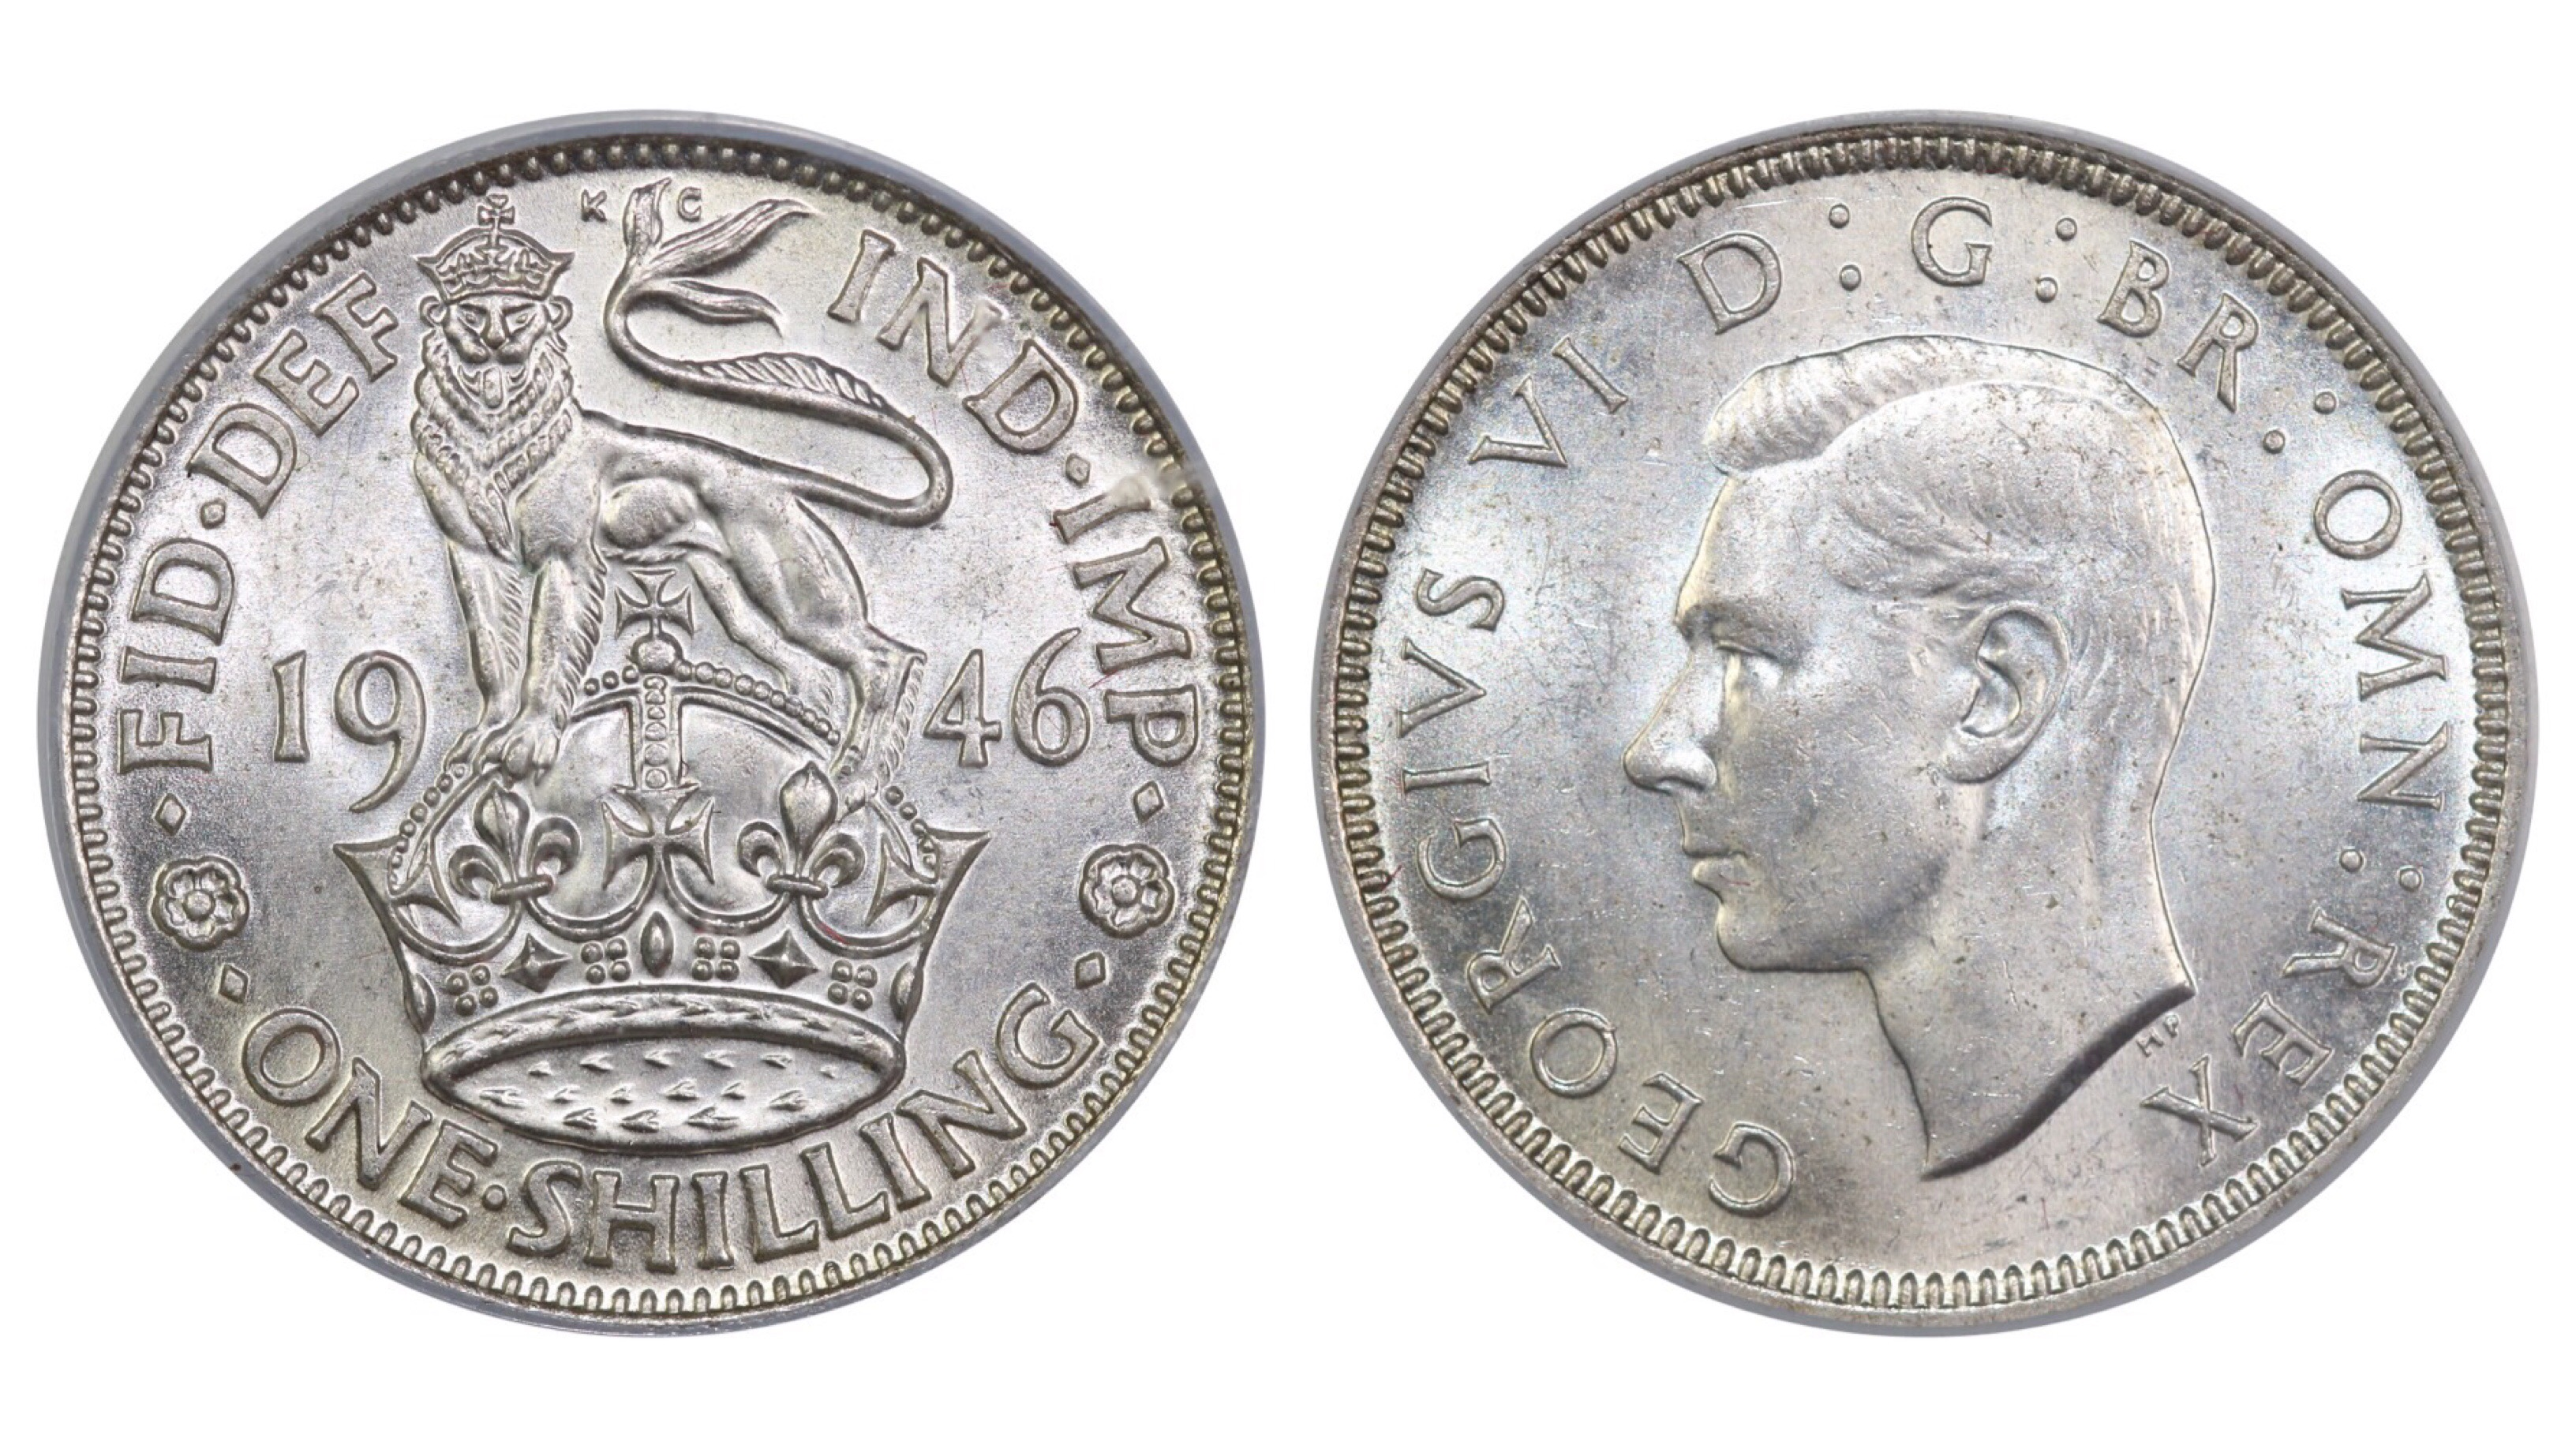 1946 'English' Shilling, CGS 78, George VI, ESC 1470, UIN 22502